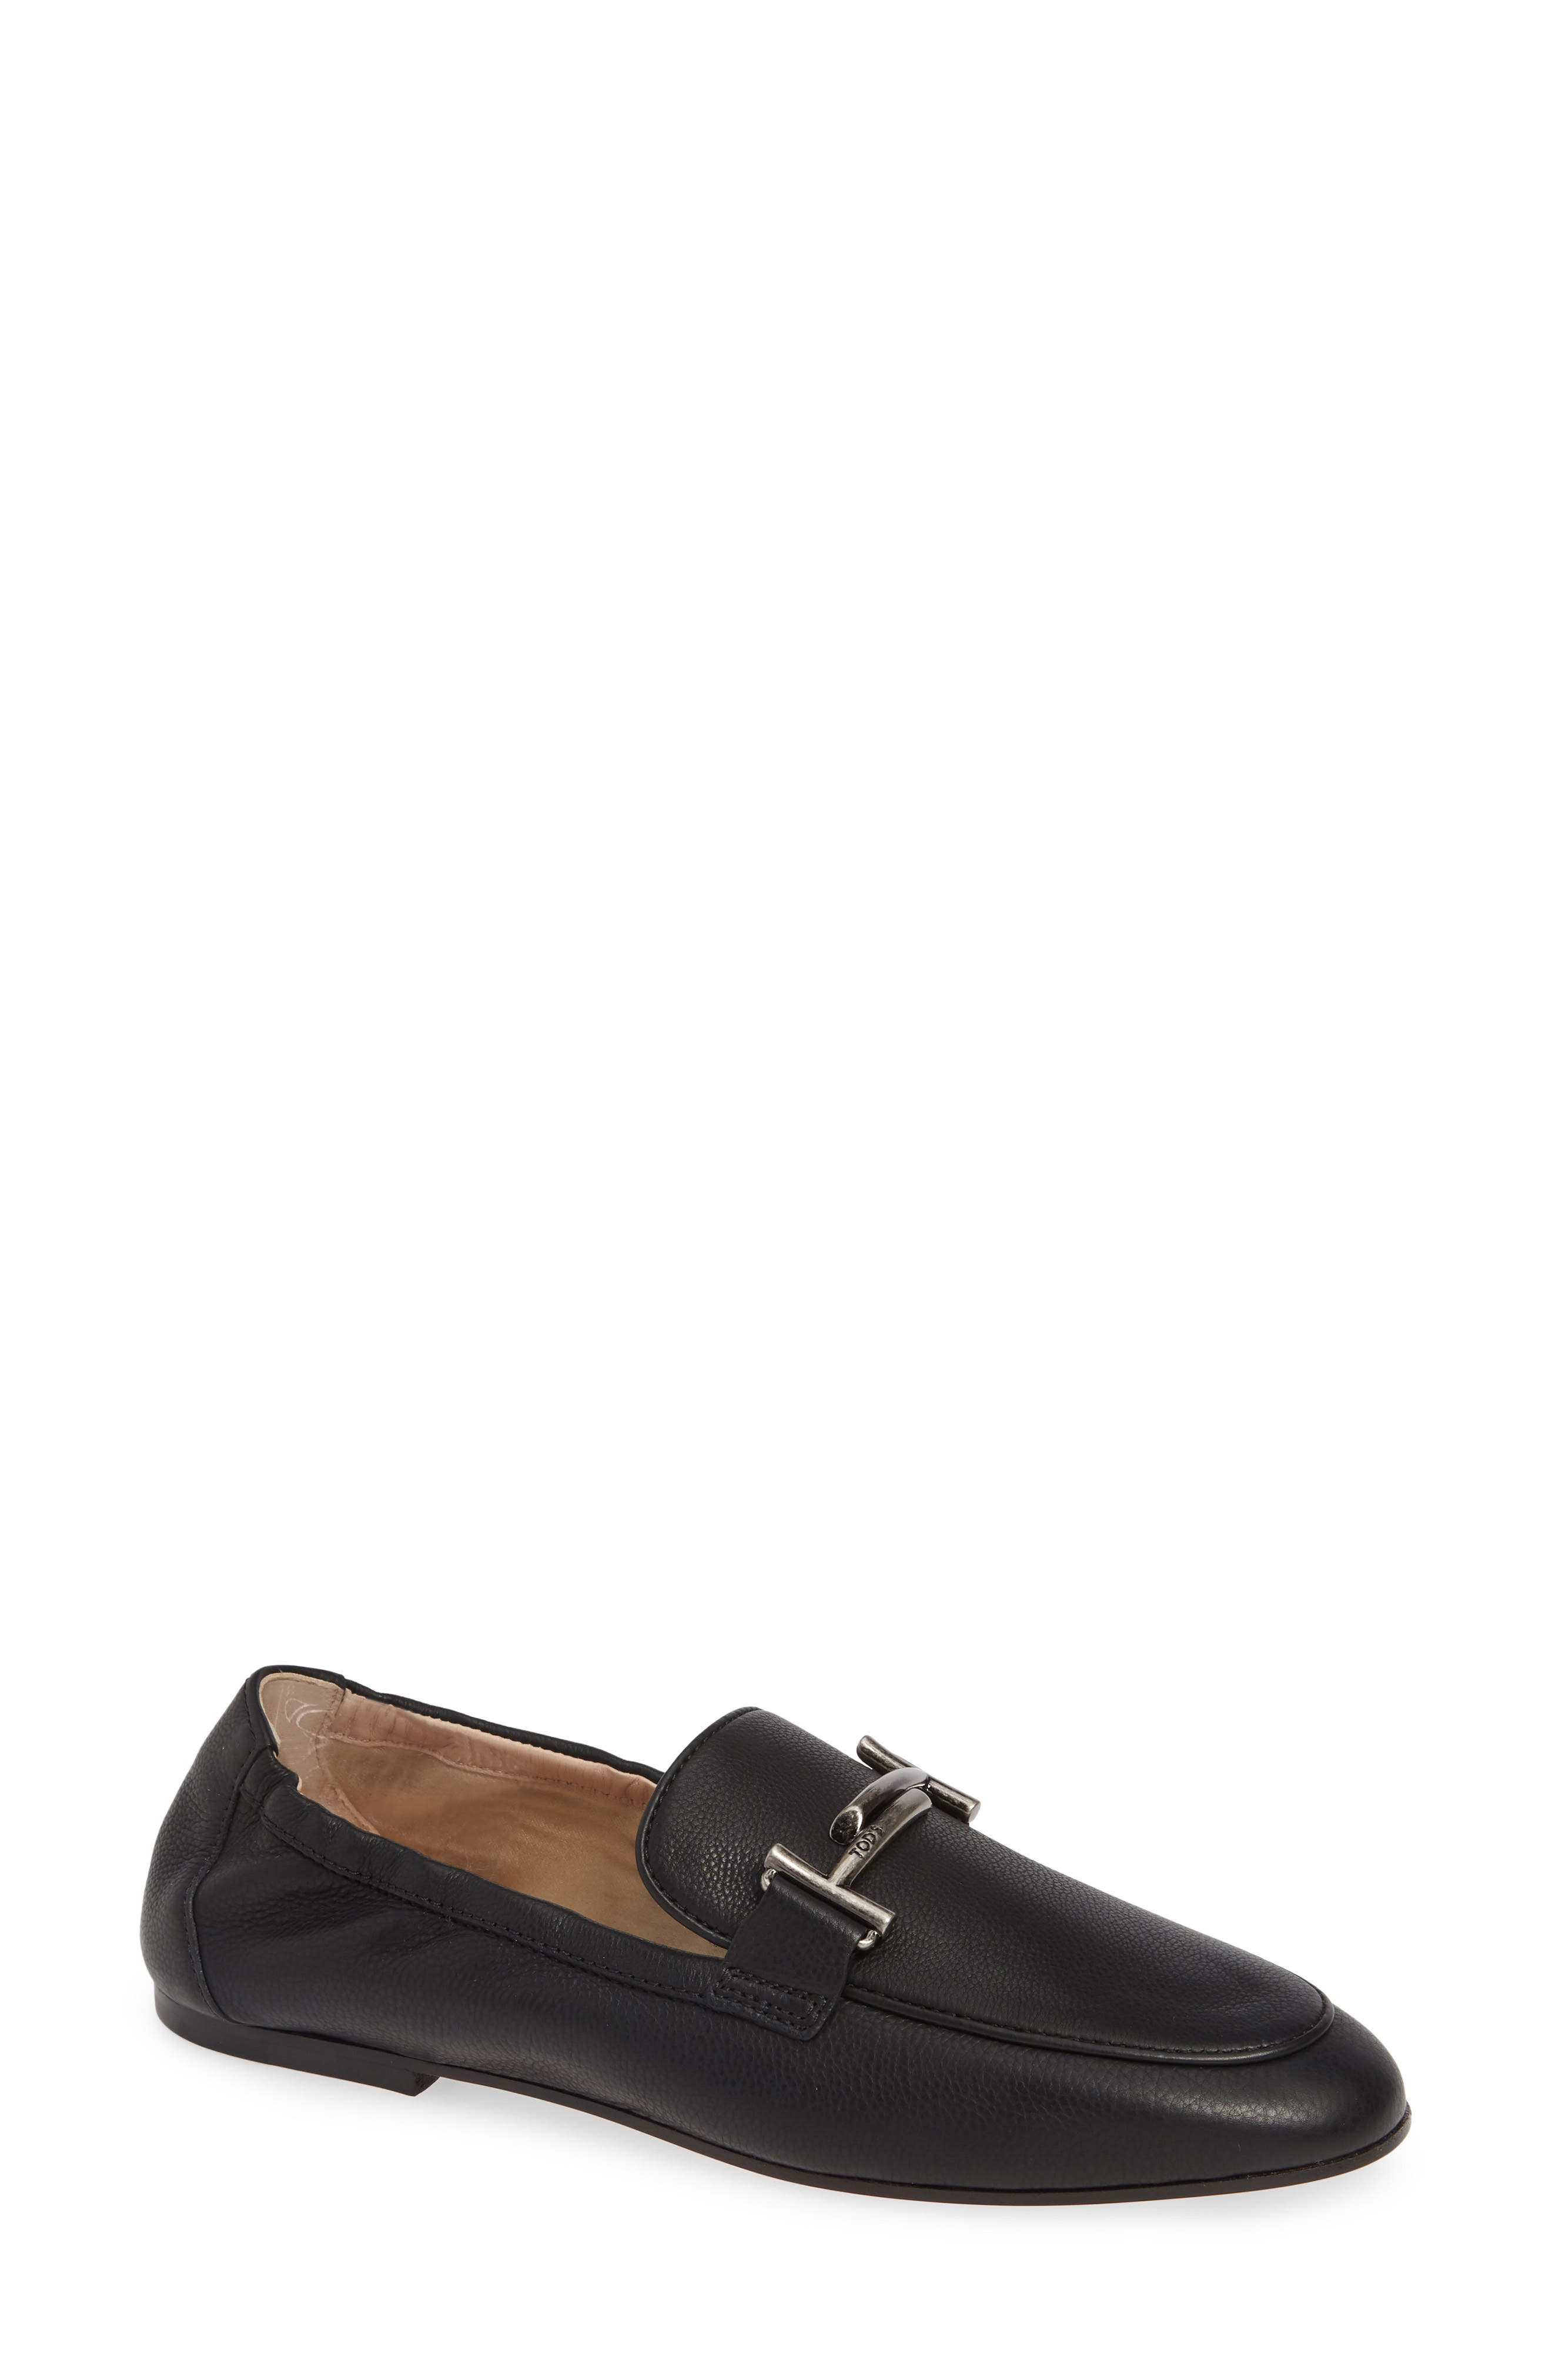 Double T Loafer,                             Main thumbnail 1, color,                             BLACK LEATHER